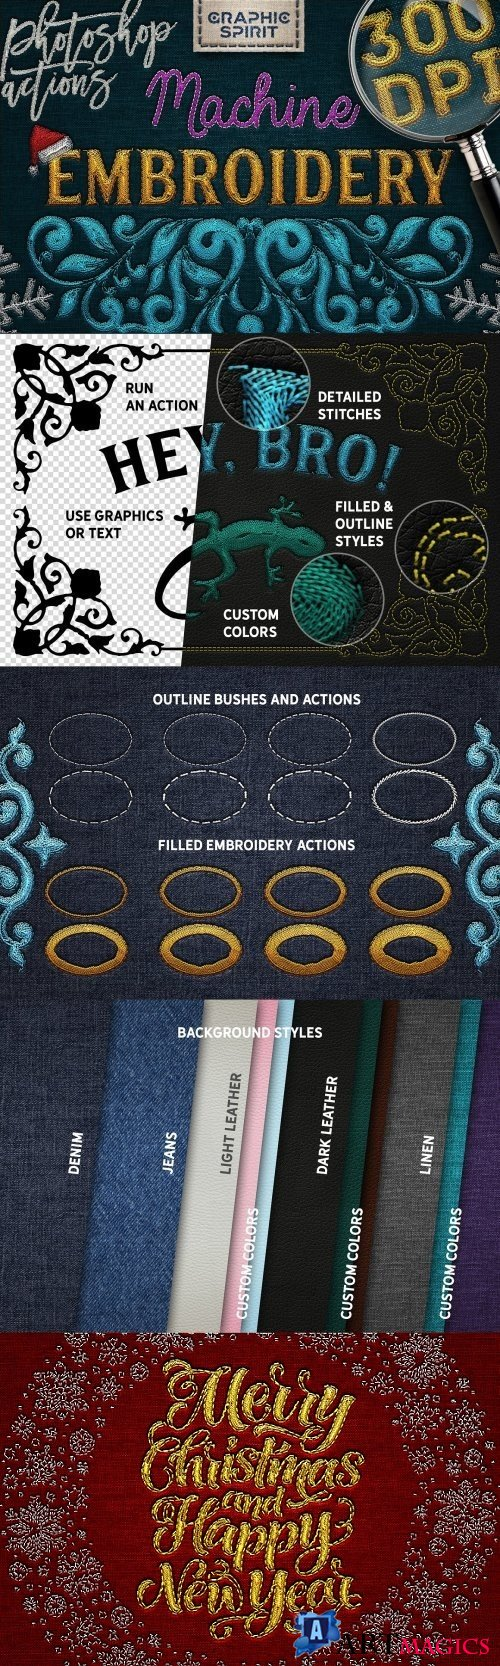 Machine Embroidery Photoshop Actions - 2167124